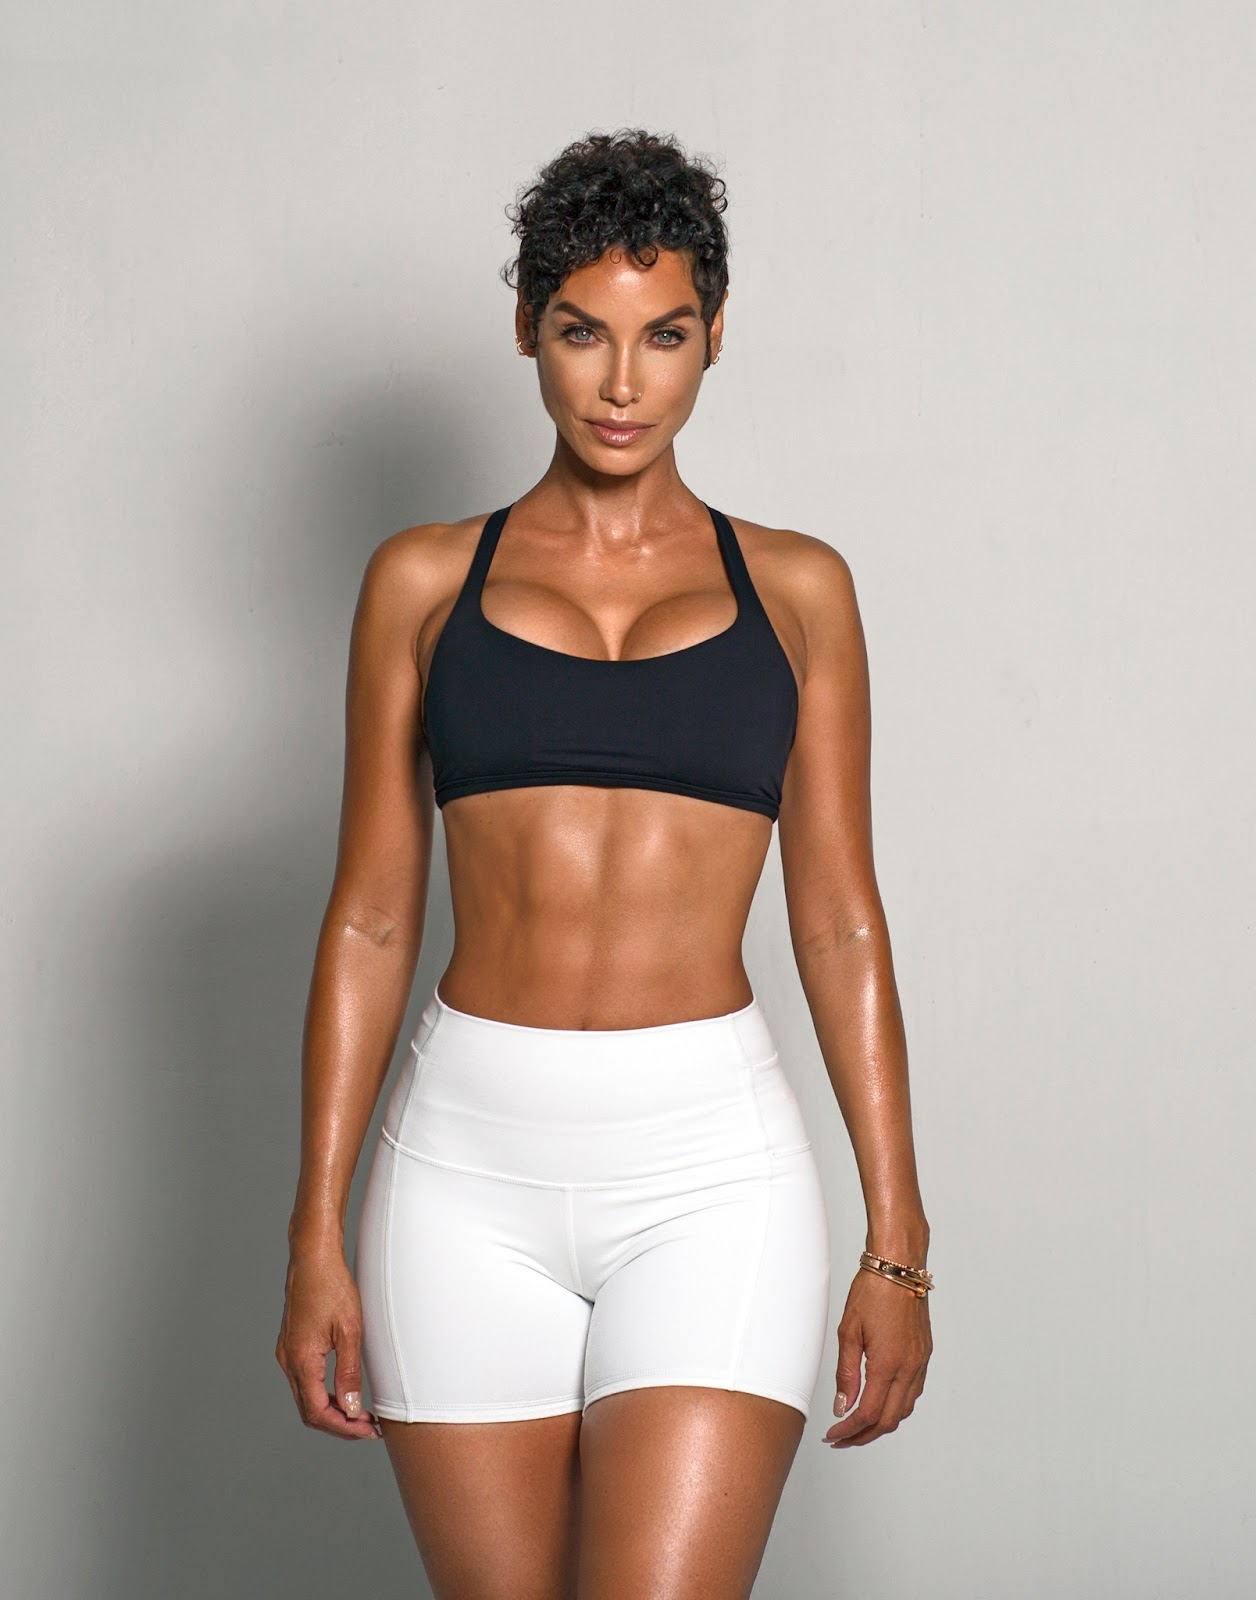 Image result for nicole murphy working out